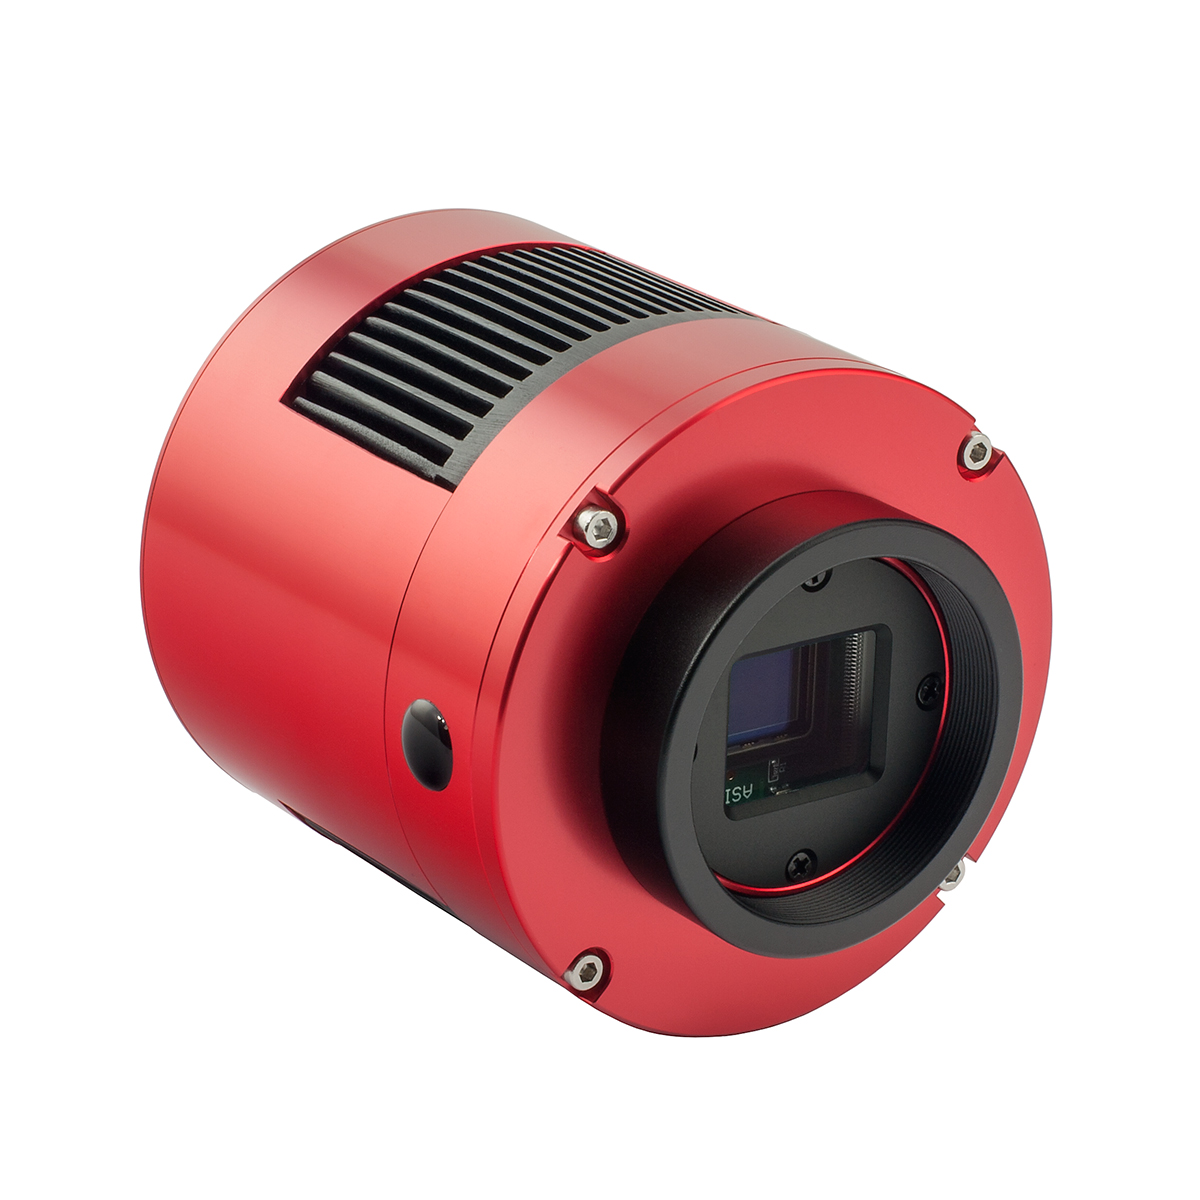 ZWO ASI 183MM-PRO USB 3.0 Cooled Mono Camera